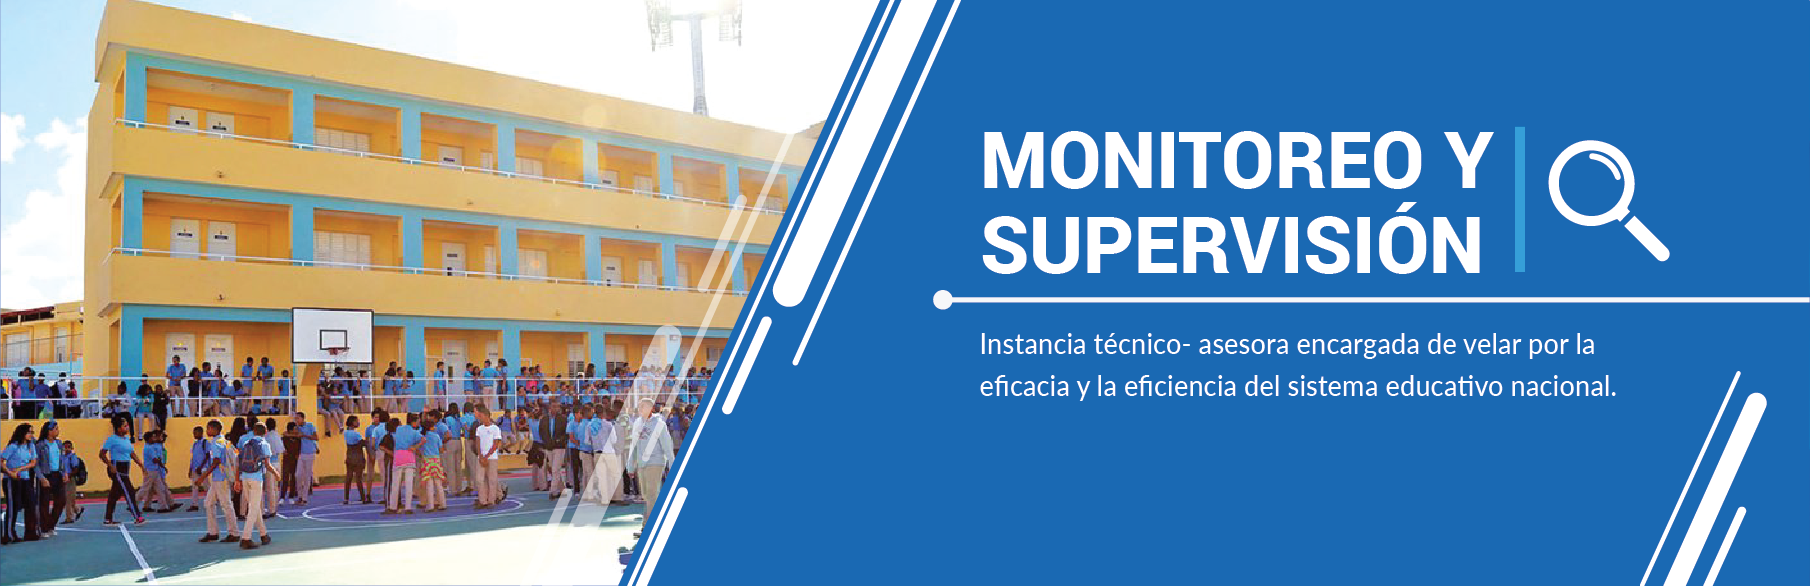 Dirección General de Supervisión Educativa